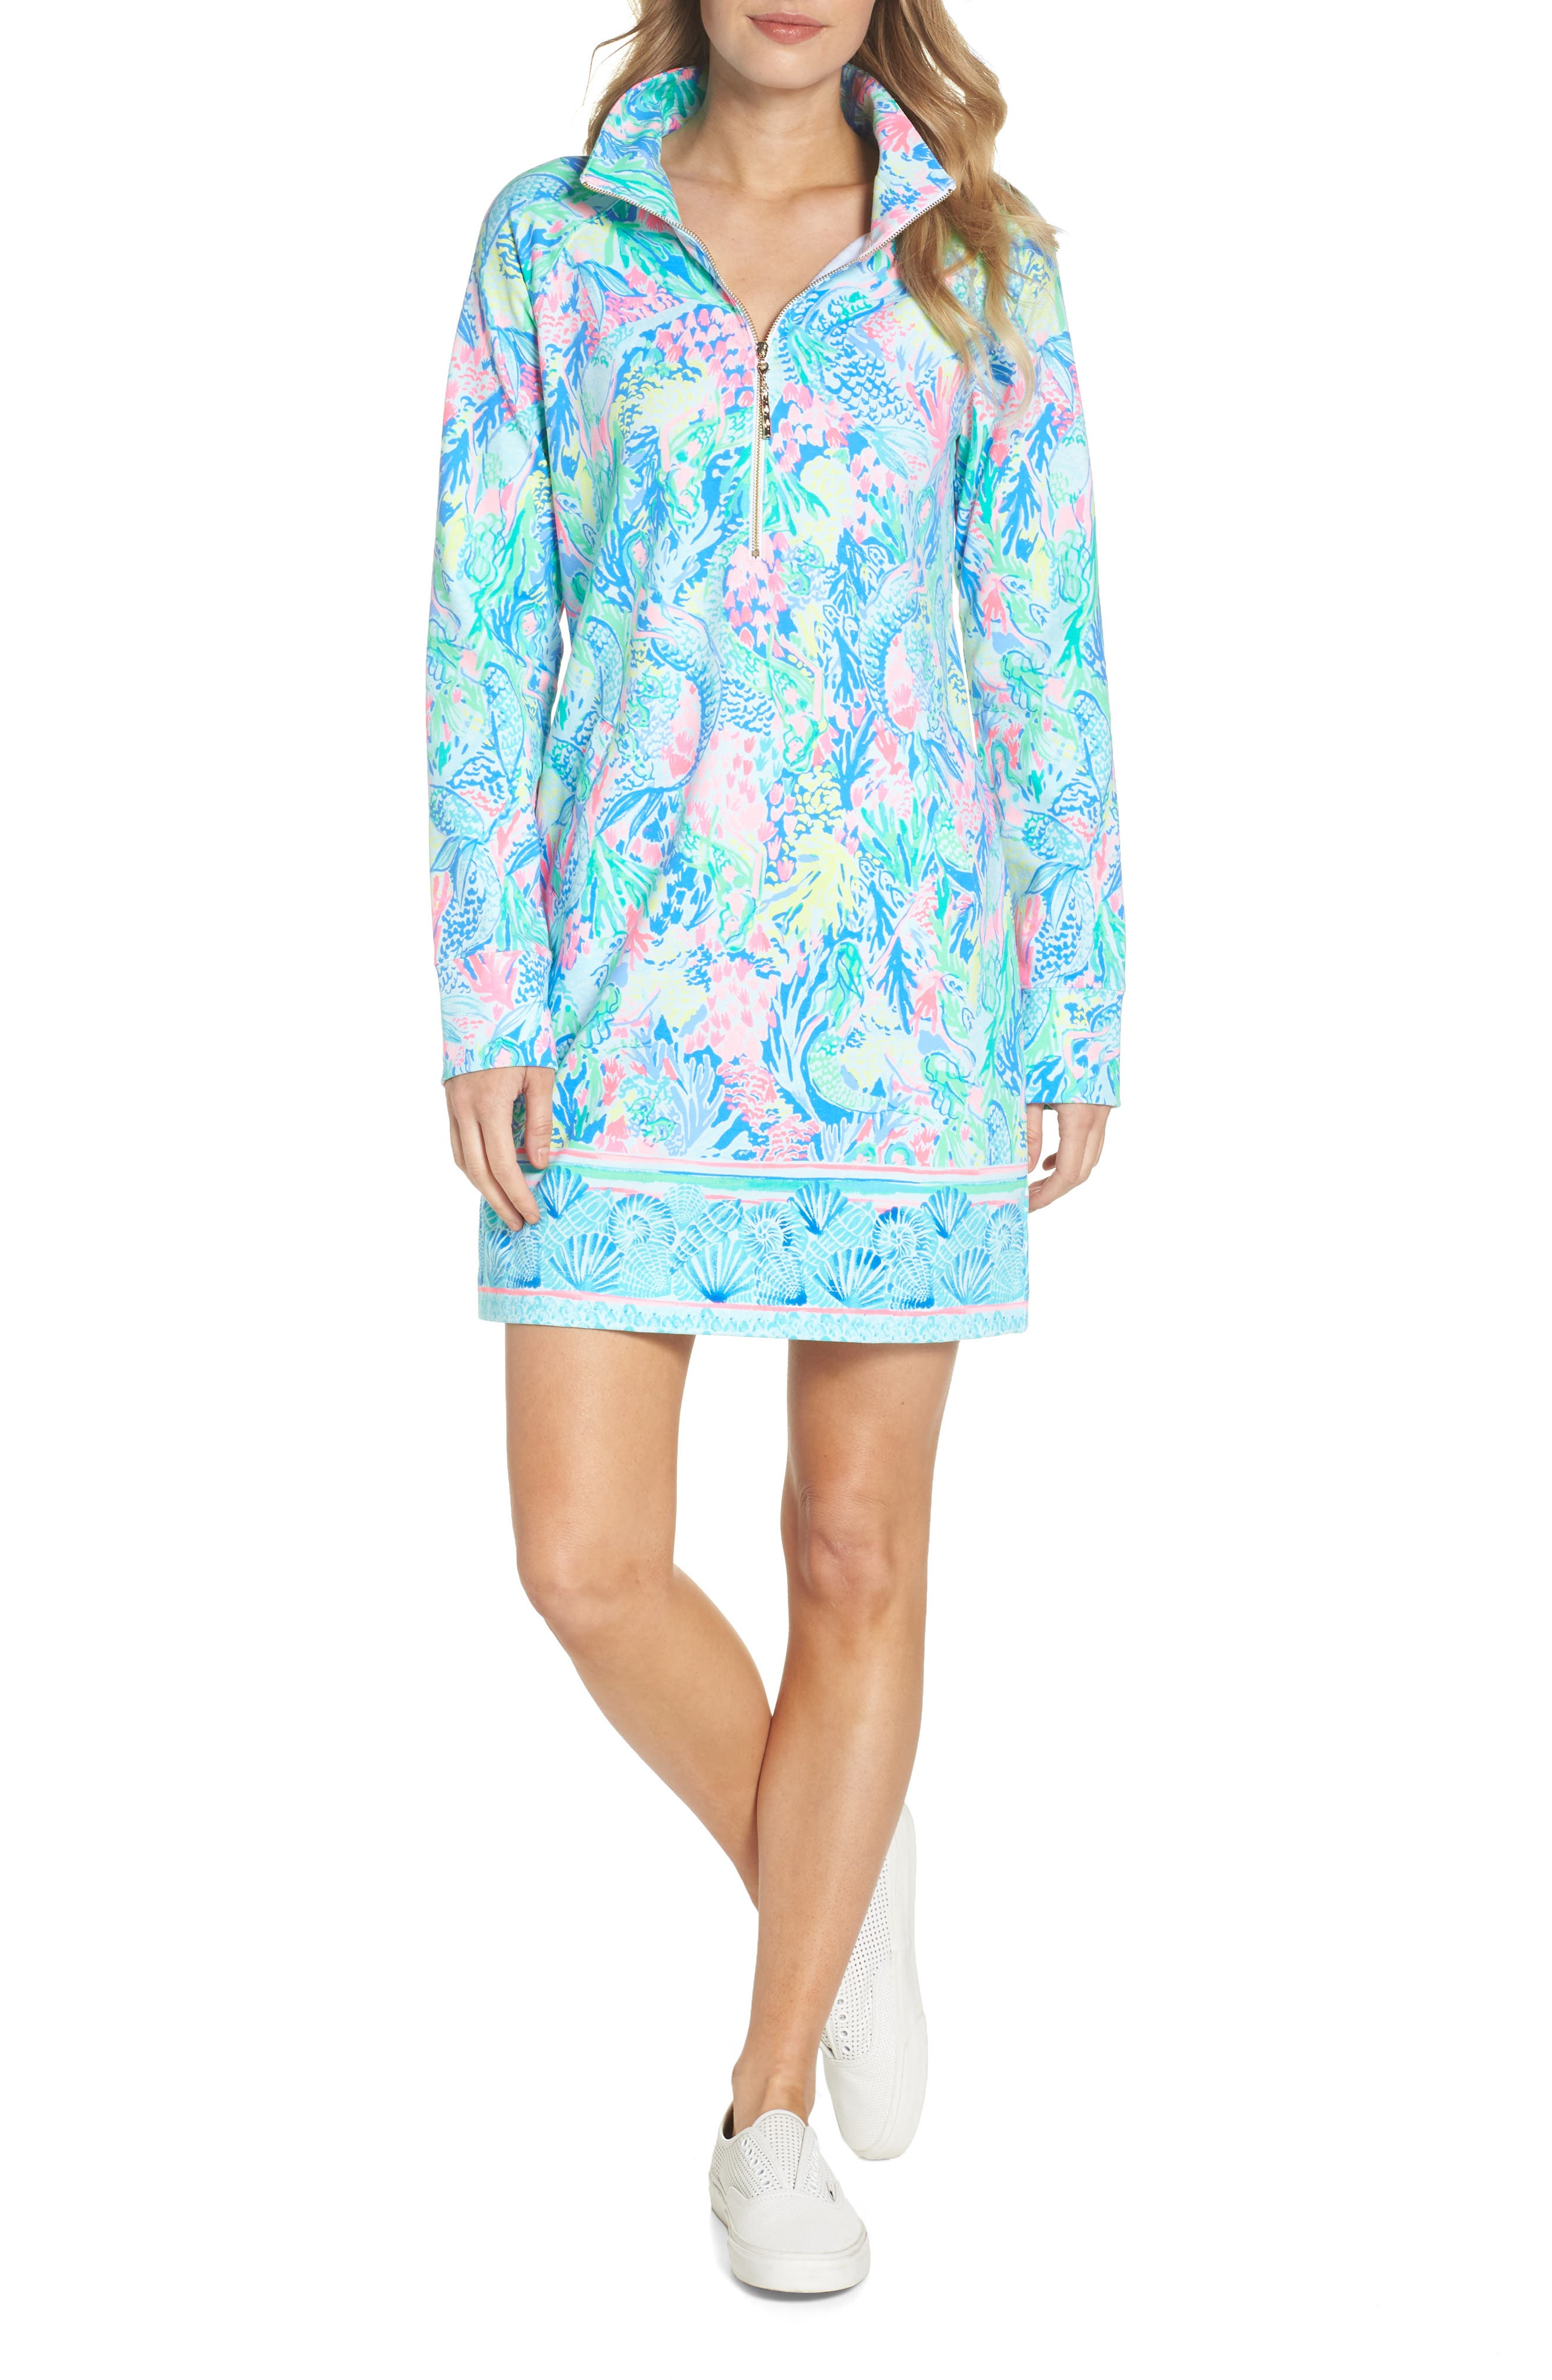 LILLY PULITZER<SUP>®</SUP>,                             Lilly Pulitzer Skipper Shift Dress,                             Alternate thumbnail 5, color,                             449